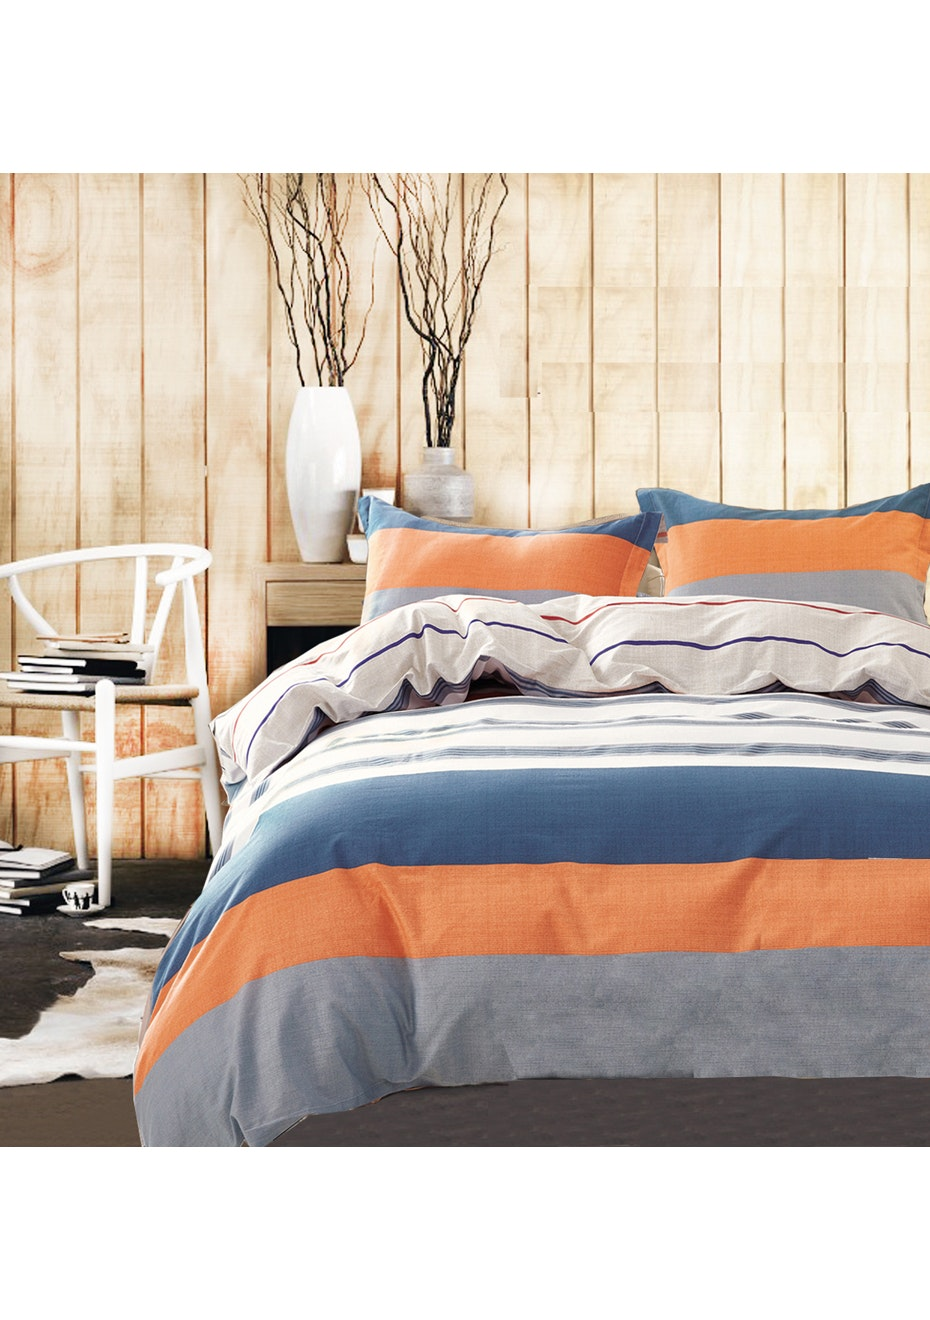 Nelson Bay Quilt Cover Set - Reversible Design - 100% Cotton - King Bed